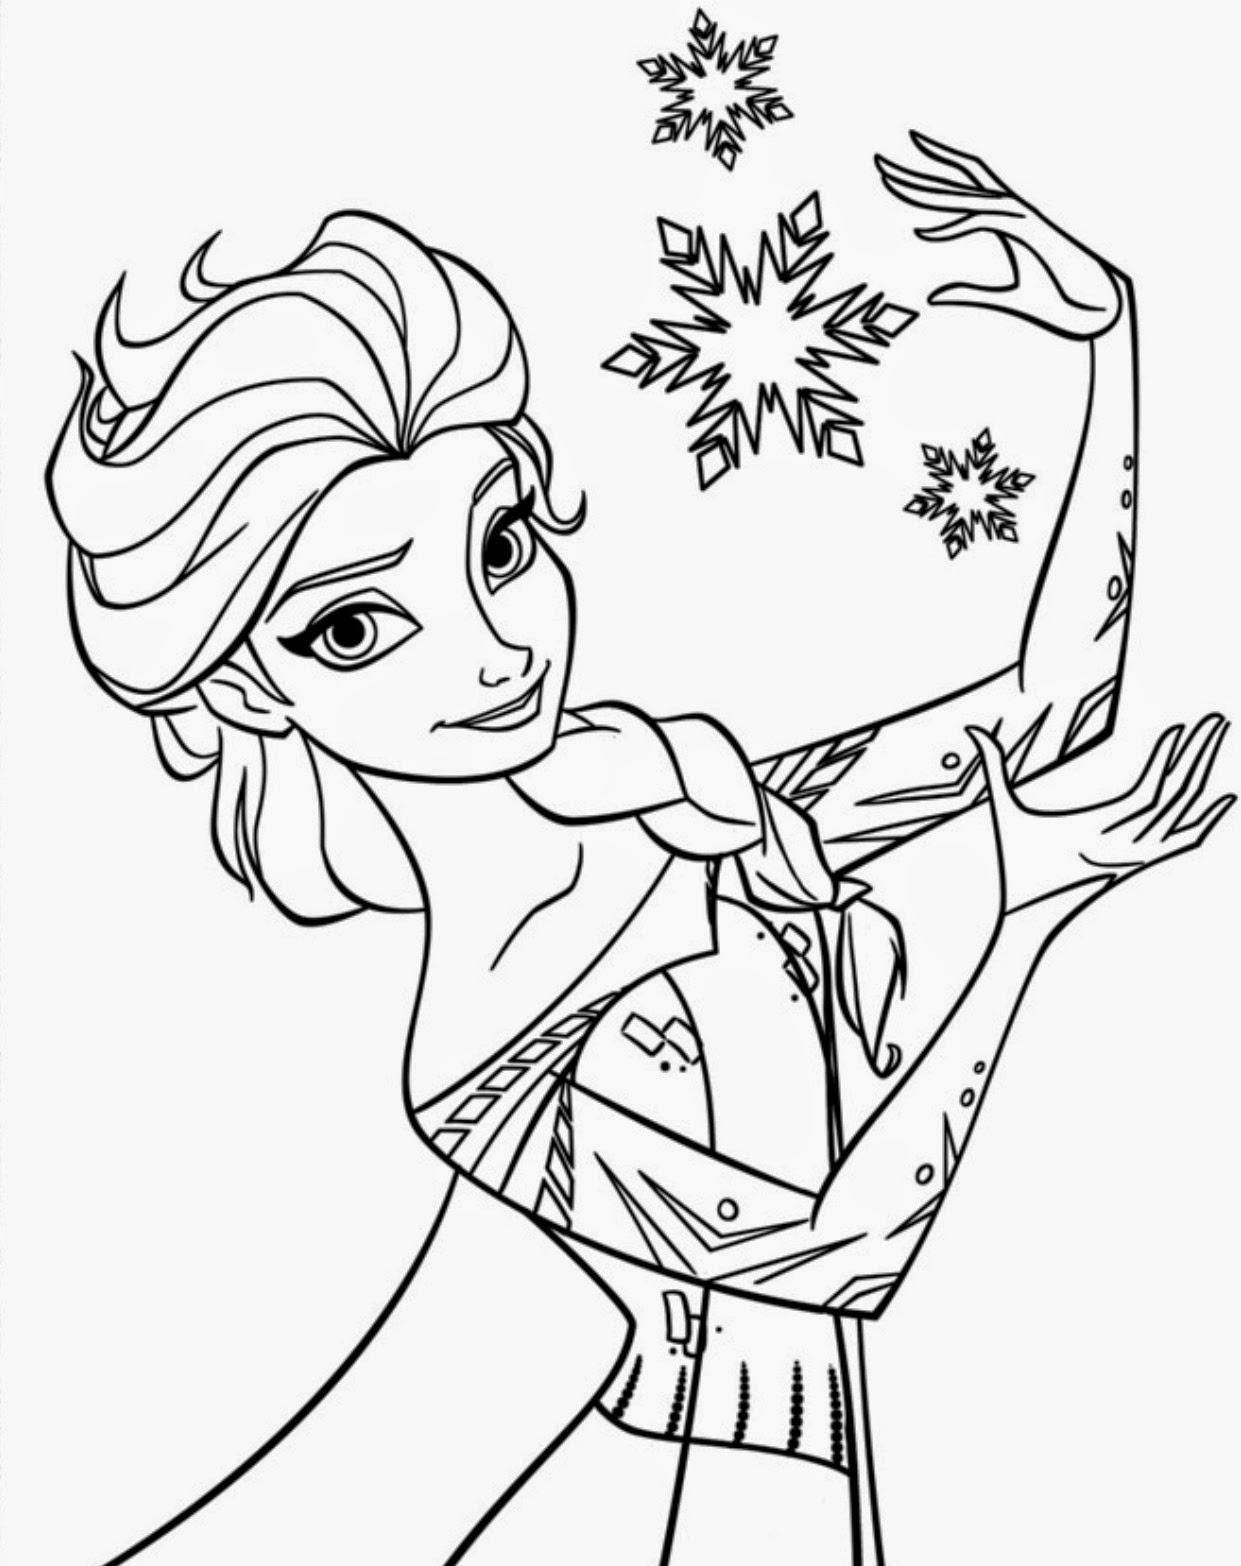 coloring pictures of frozen characters frozen coloring sheets all characters famous characters characters frozen of pictures coloring